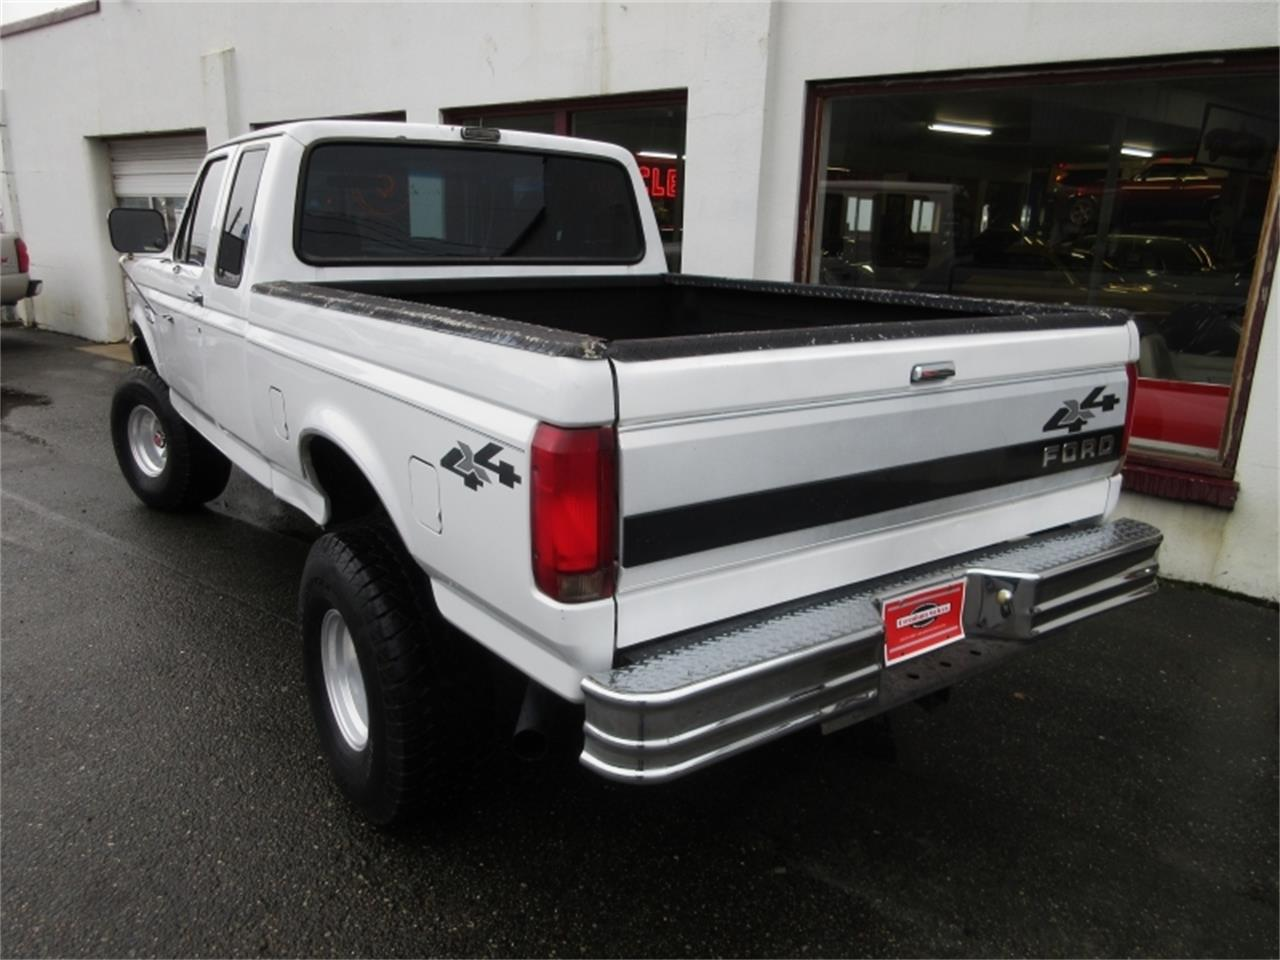 Large Picture of 1993 Ford F150 - $5,995.00 Offered by Premium Motors - MO7K